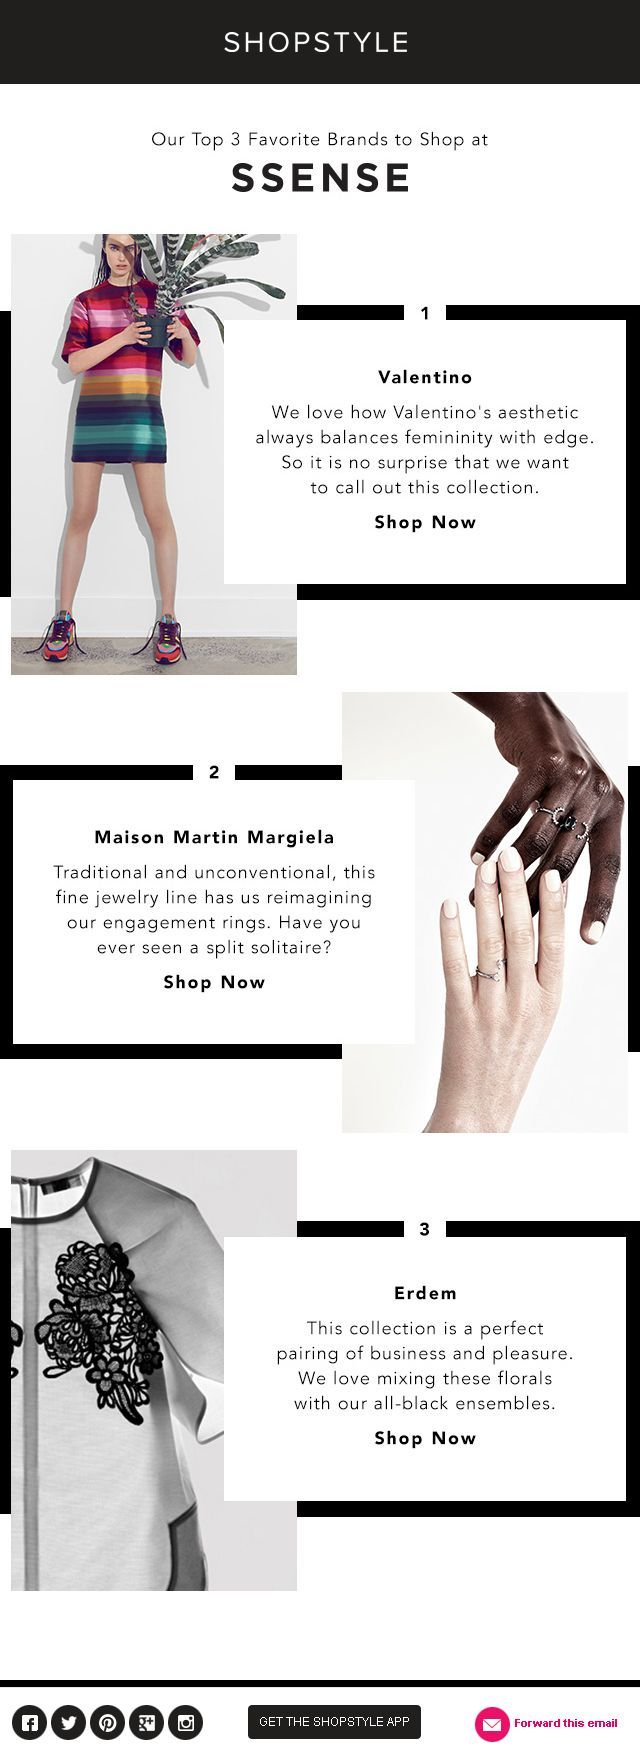 ShopStyle: Introducing 3 Inspired Designer Collections Everybody with a business needs to have marketing platform that would provide a website, with lead capture up to 10K leads, sales funnels, play videos, and work on PC, Tablet and notepad for less than US$50.00 monthly fee. Join us for the FREE webinar about building your marketing platform.  Click on the link. http://brdcst.me/signup/?w=1950